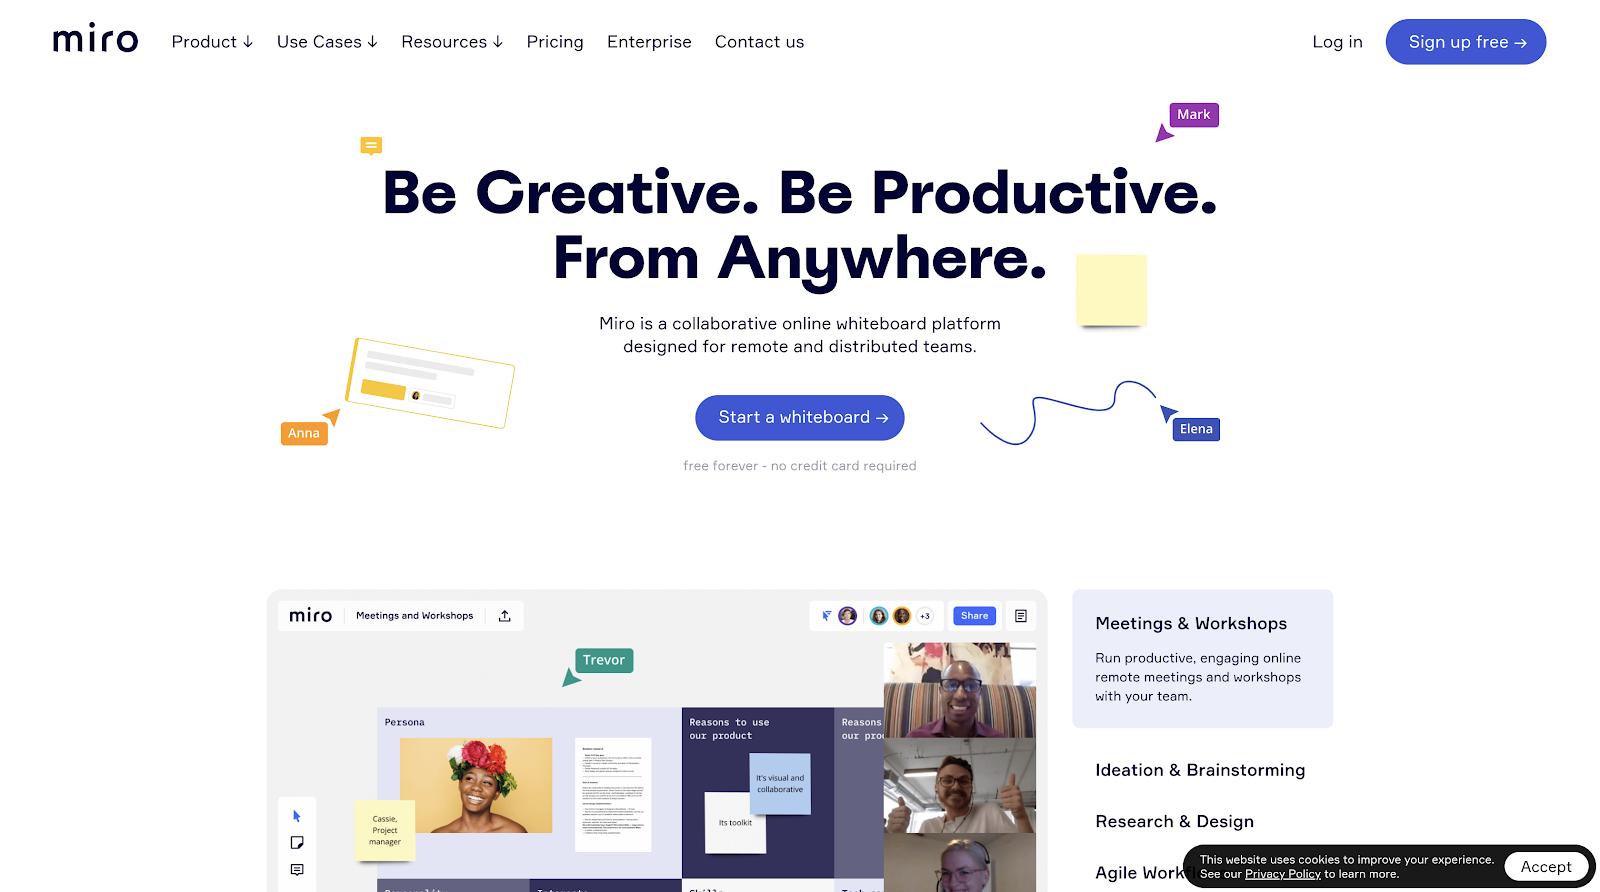 miro - Be Creative. Be Productive. From Anywhere